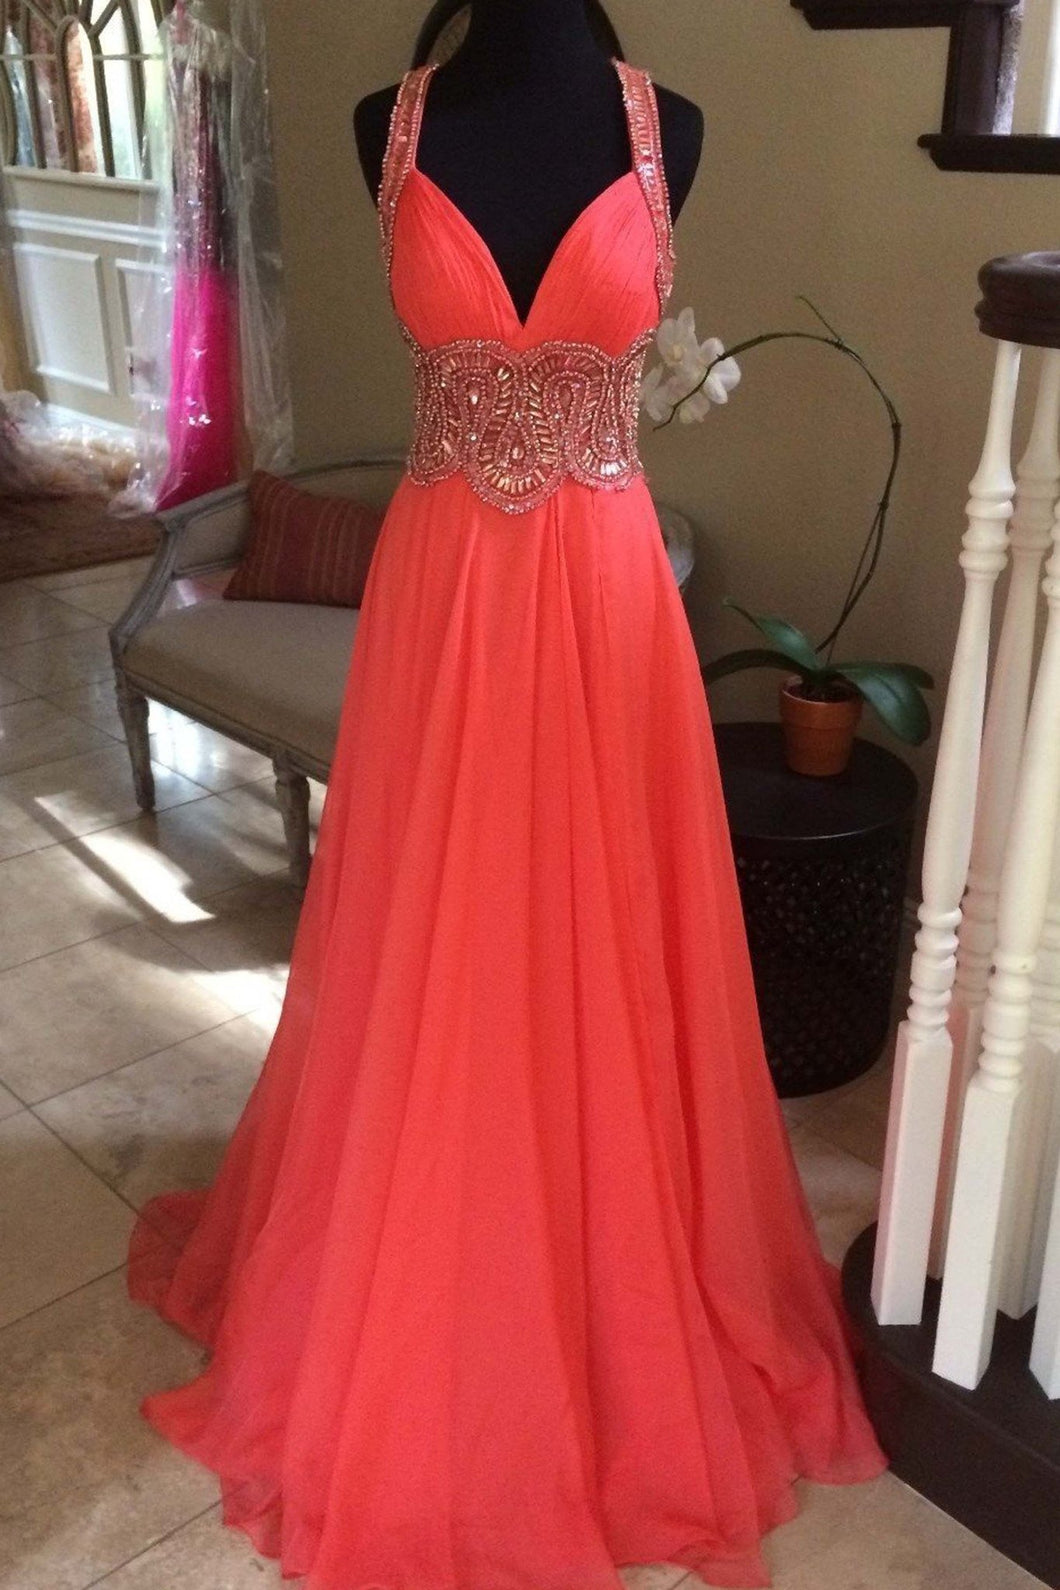 2019 Prom Dresses | Coral chiffon beading V-neck long dresses,handmade long prom dress